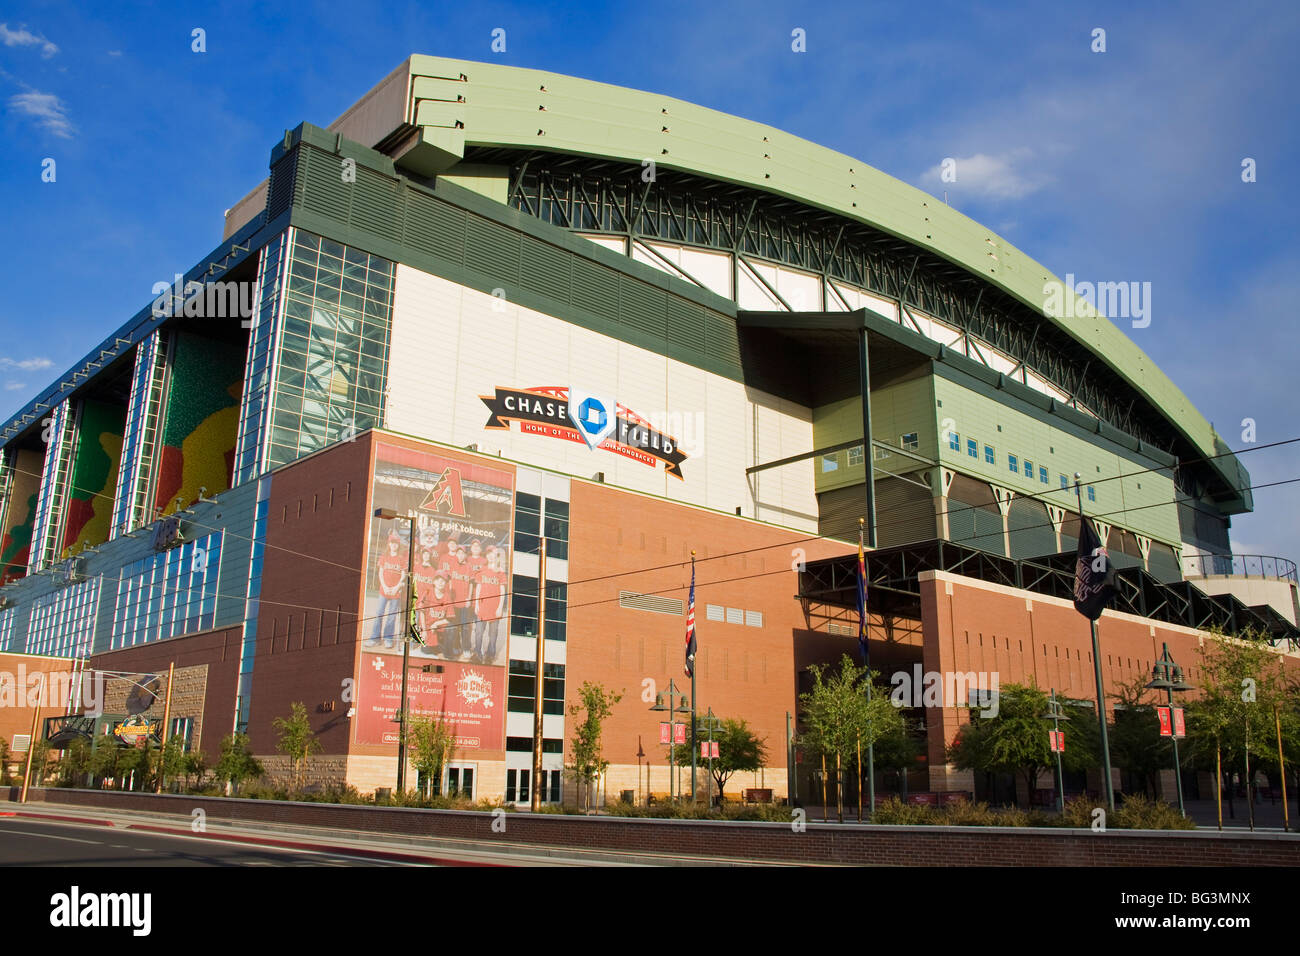 Chase Field Baseball Park, Phoenix, Arizona, États-Unis d'Amérique, Amérique du Nord Photo Stock